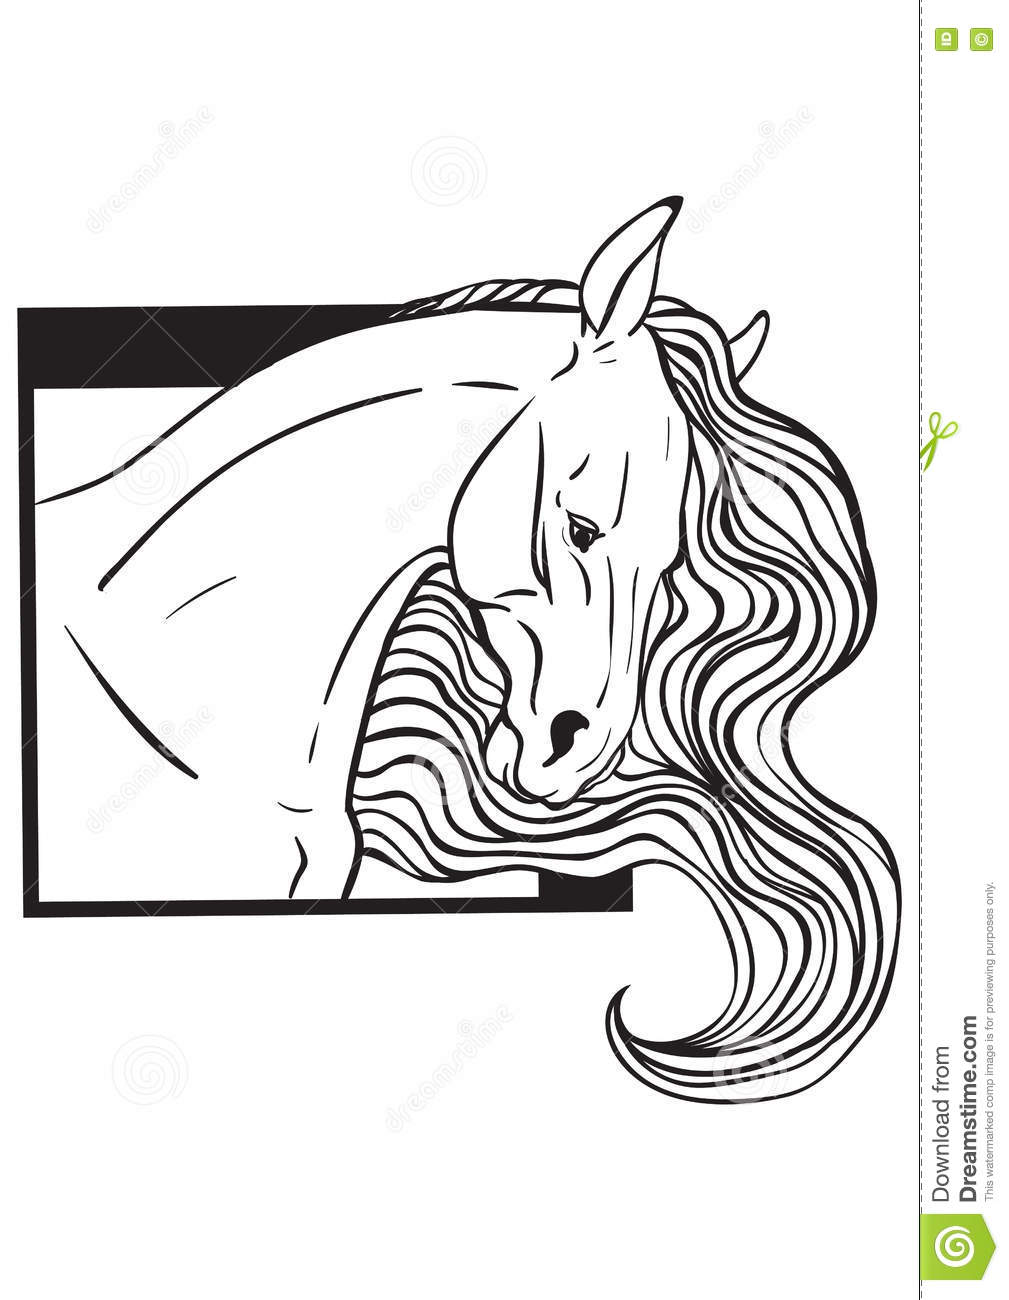 Coloring Page With Horse Portrait Stock Vector - Illustration of ...